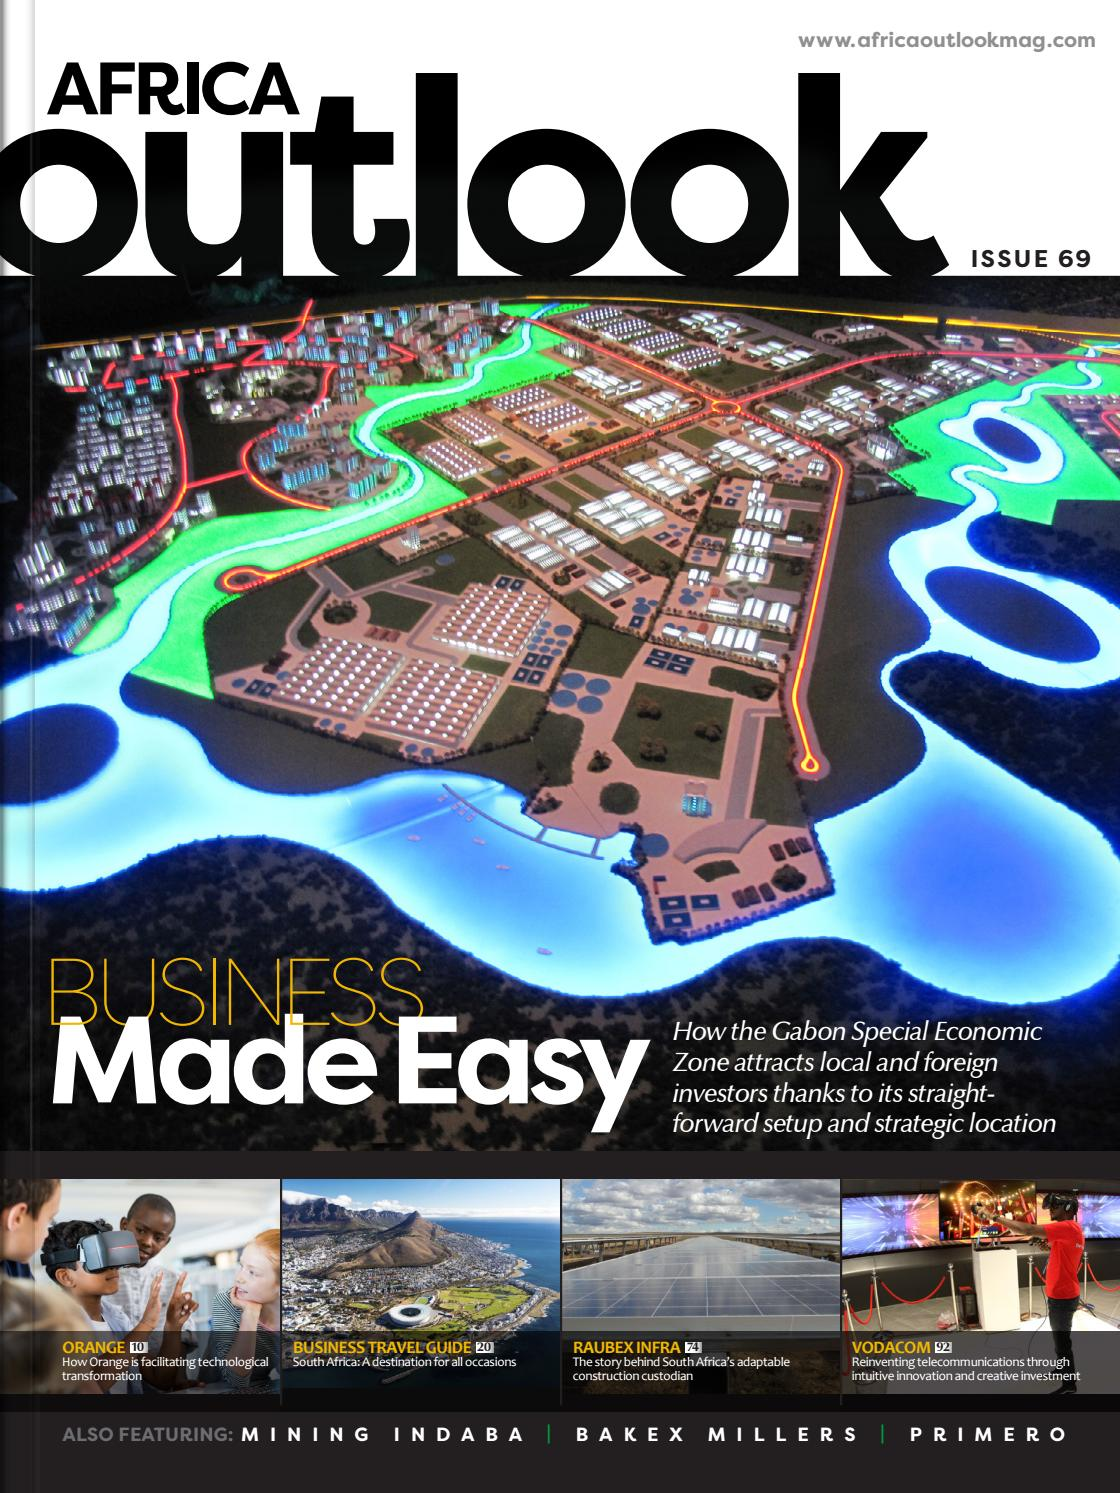 Africa Outlook - Issue 69 by Outlook Publishing - issuu